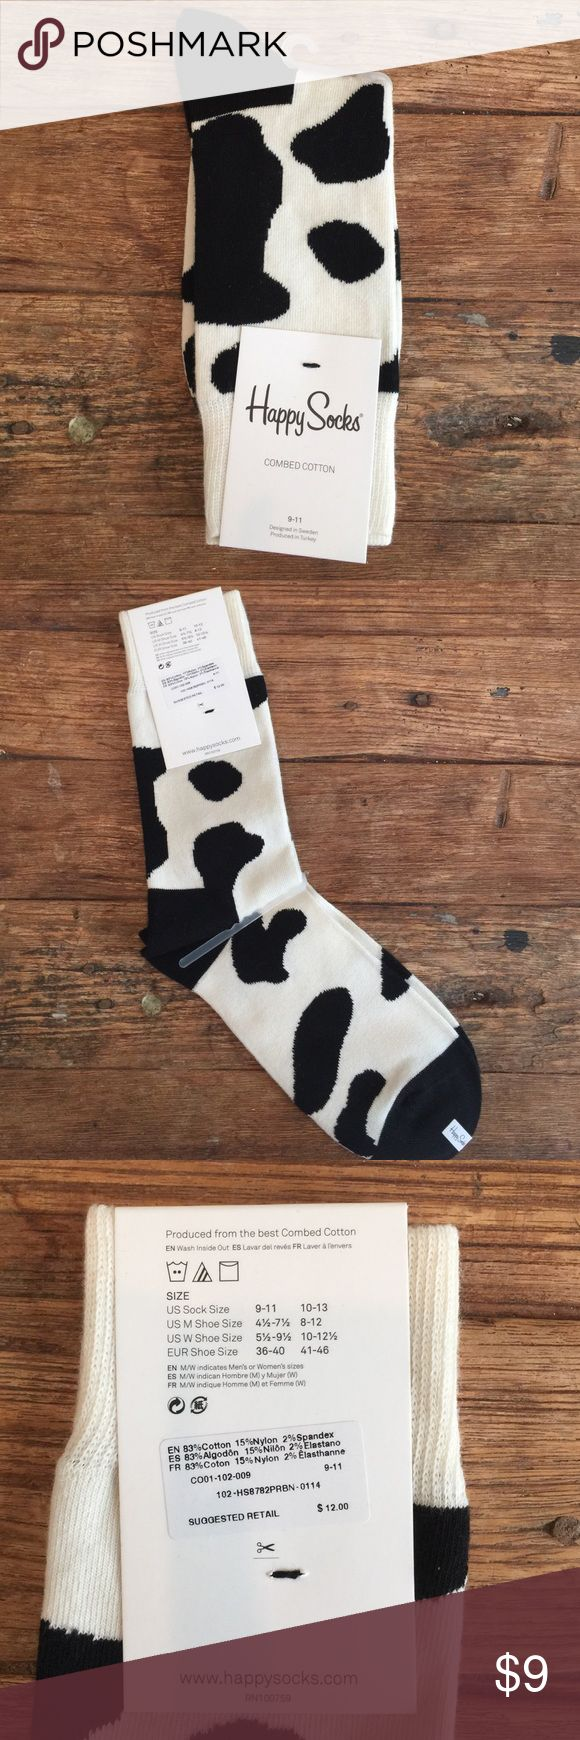 HAPPY SOCKS NEW Cow print Happy Socks! Size 9-11, women's! Super cute and comfortable. Happy Socks Accessories Hosiery & Socks